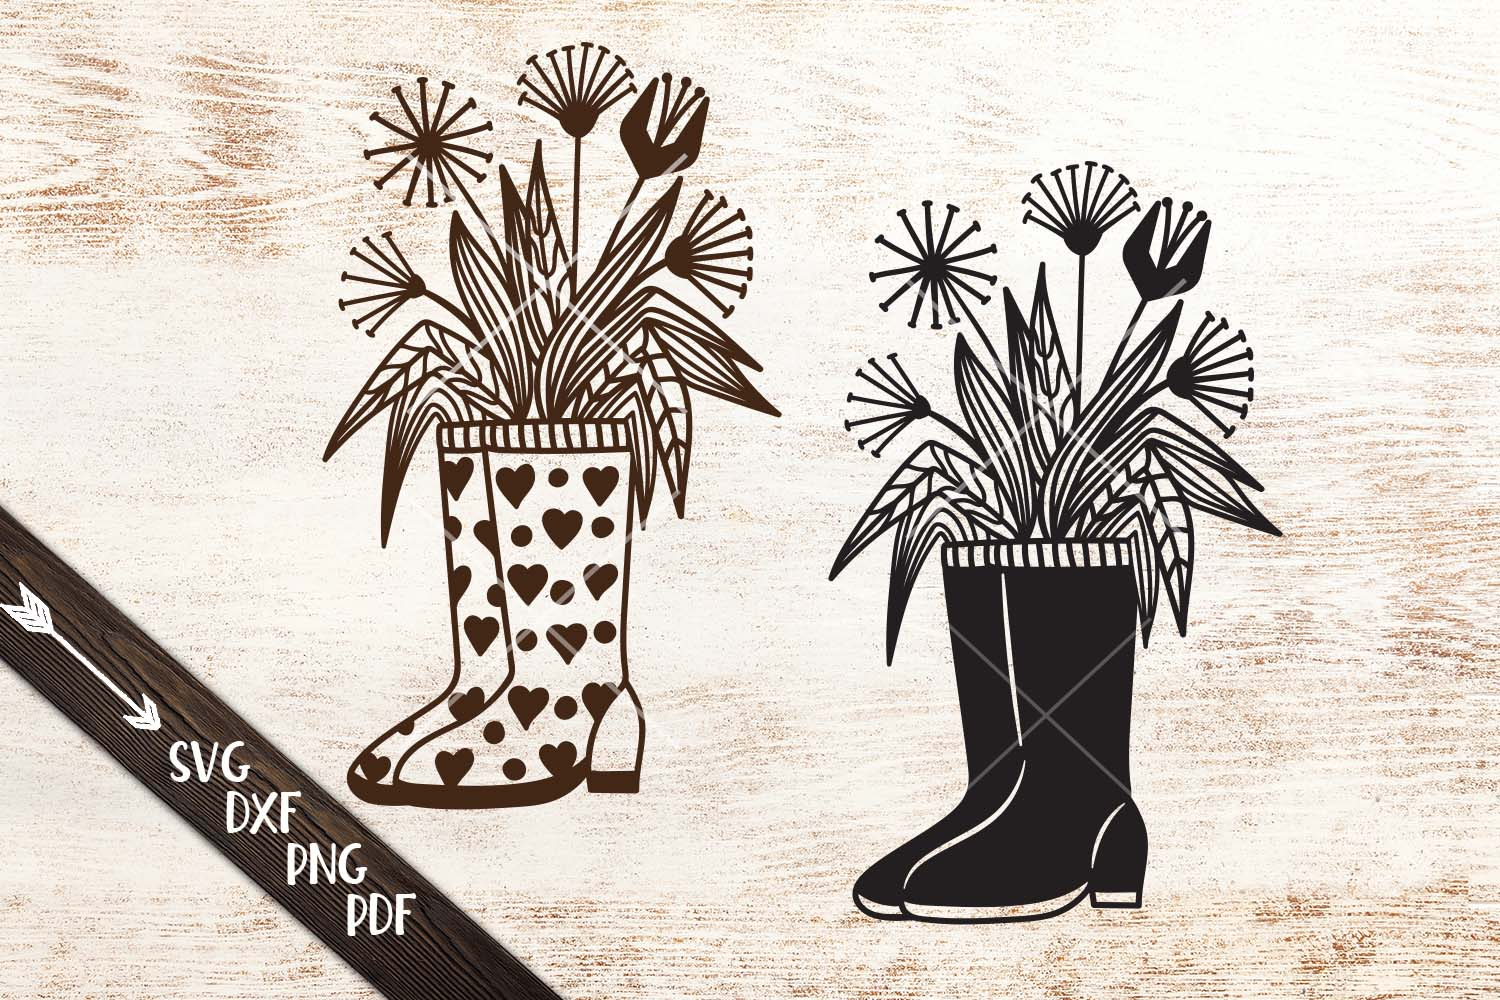 Wellies rain boots with flowers svg dxf cutting templates example image 1